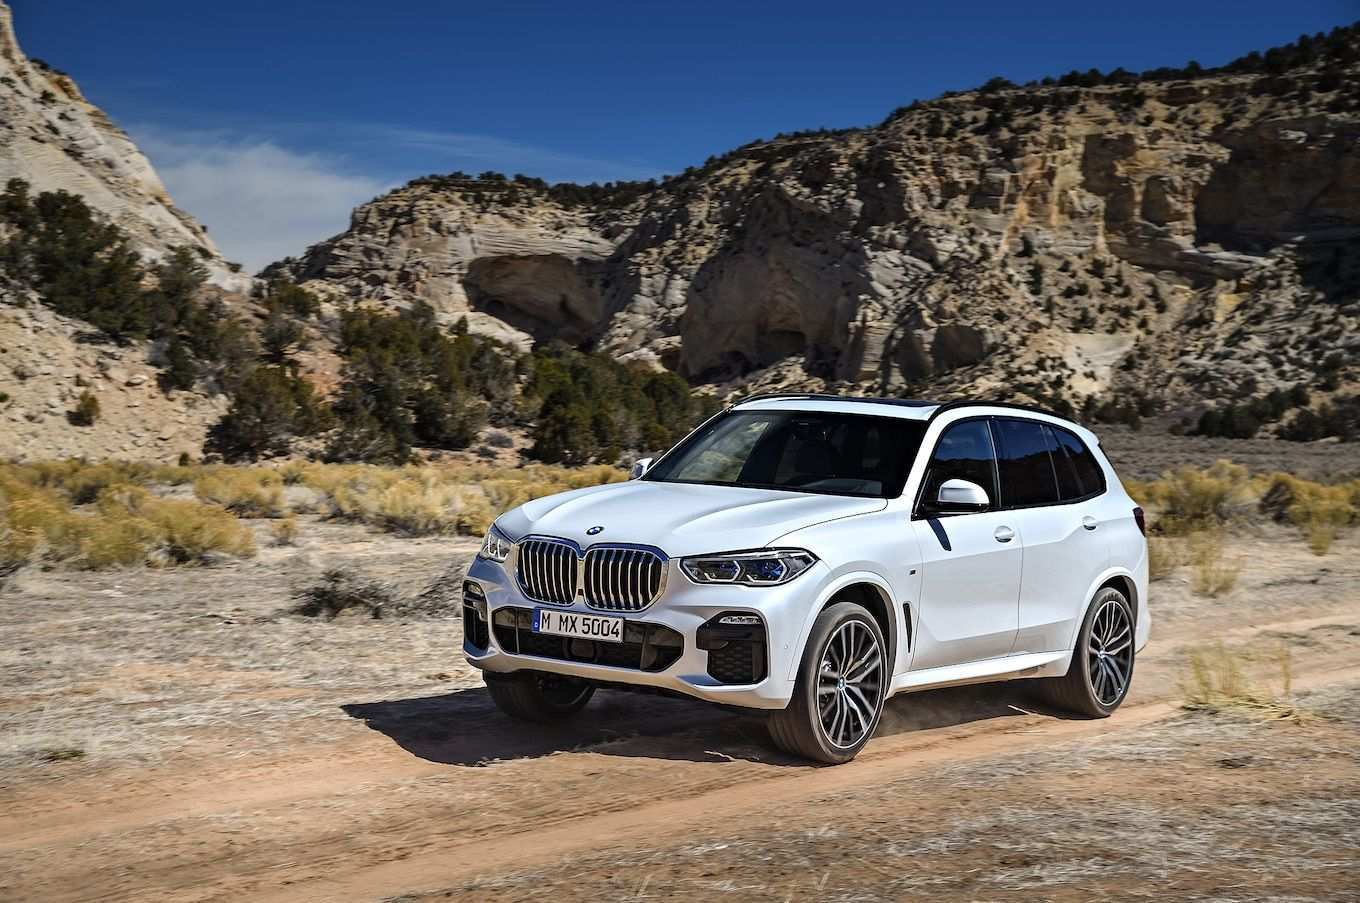 97 Great The Bmw New Suv 2019 Spy Shoot Overview for The Bmw New Suv 2019 Spy Shoot